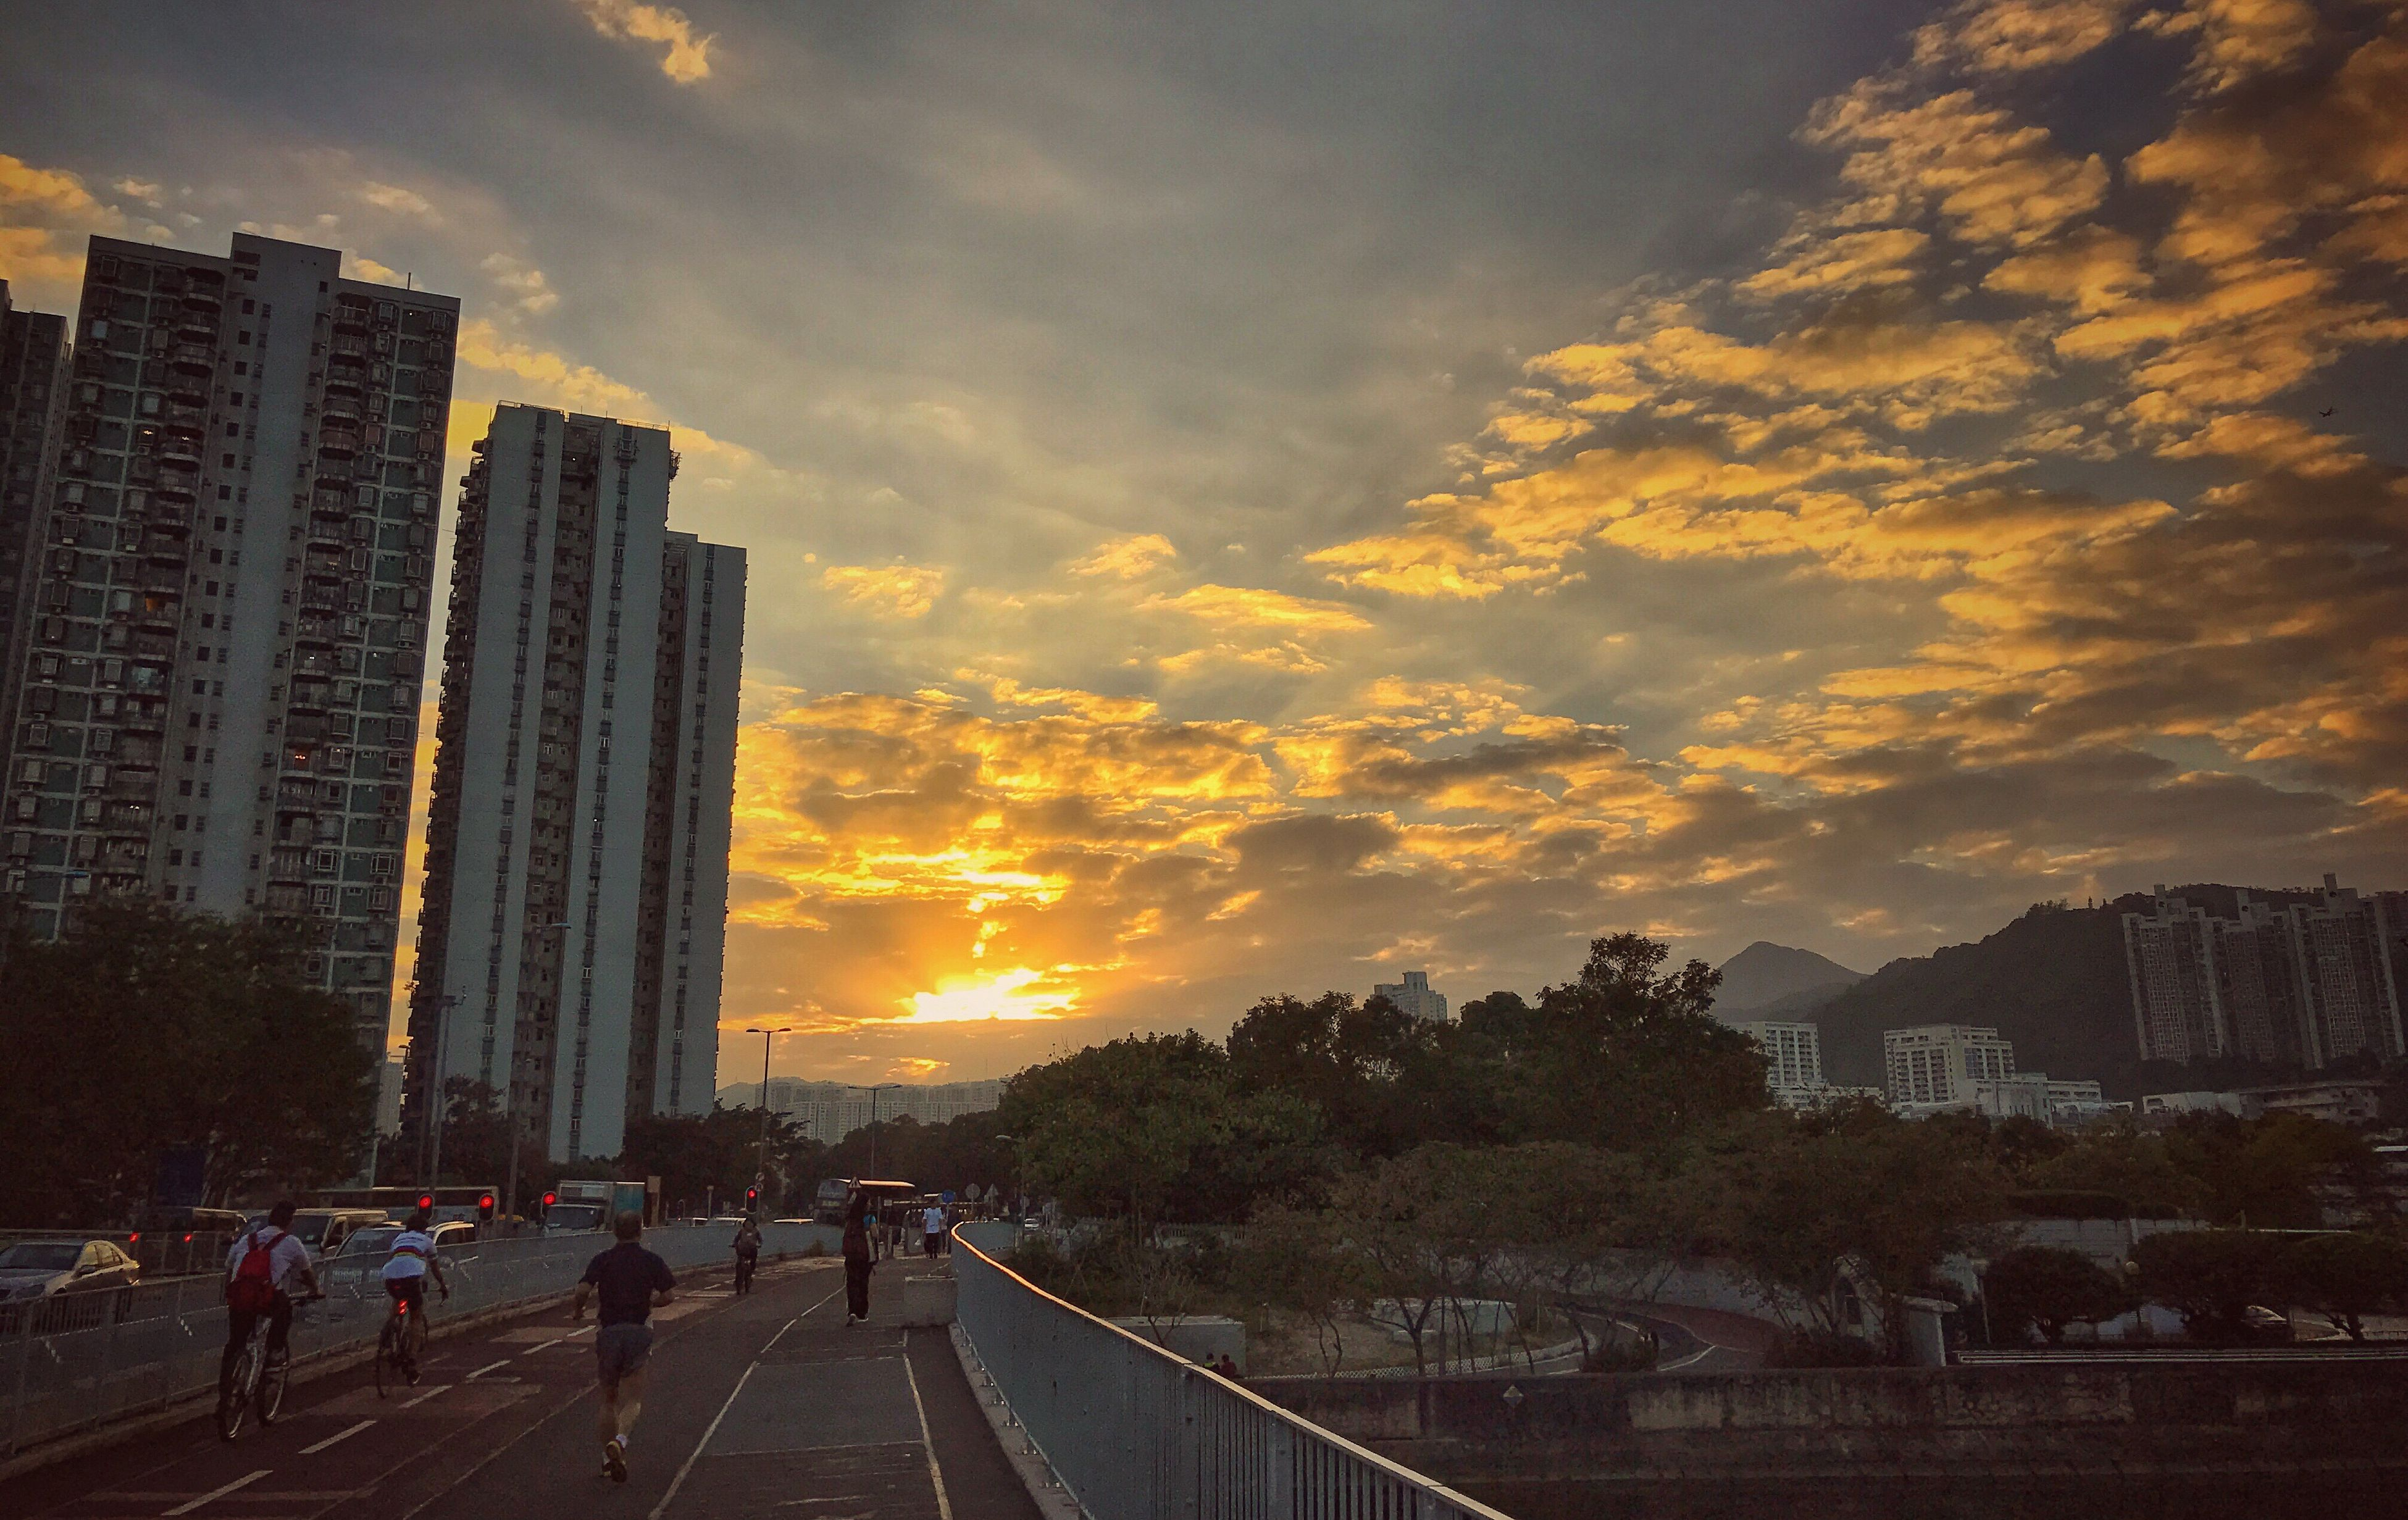 city, sunset, skyscraper, building exterior, architecture, cityscape, sky, built structure, cloud - sky, outdoors, travel destinations, transportation, city life, urban skyline, growth, development, tree, downtown district, no people, nature, day